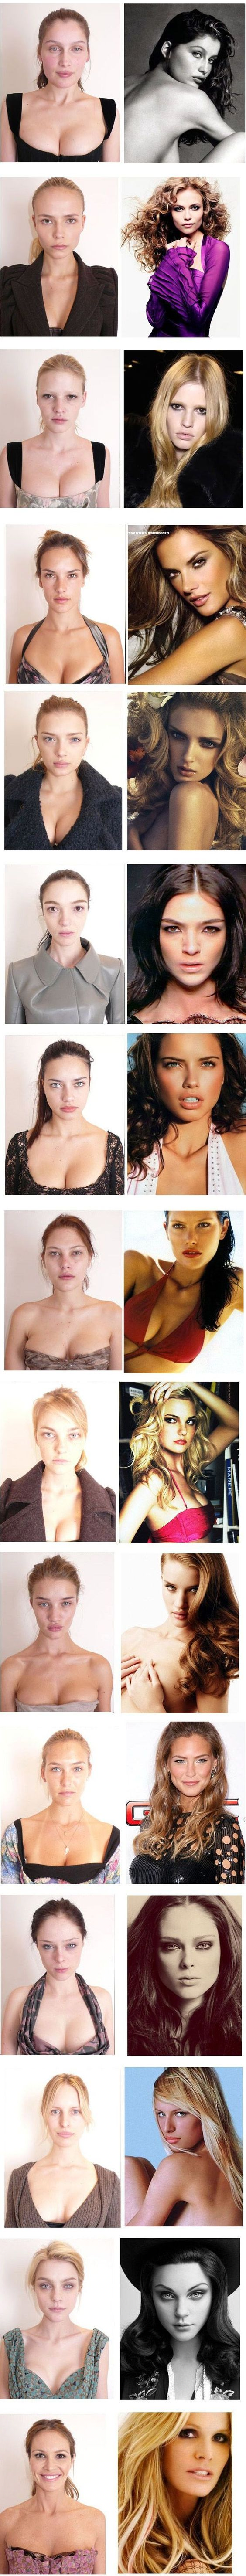 Victoria's secret models without make up: